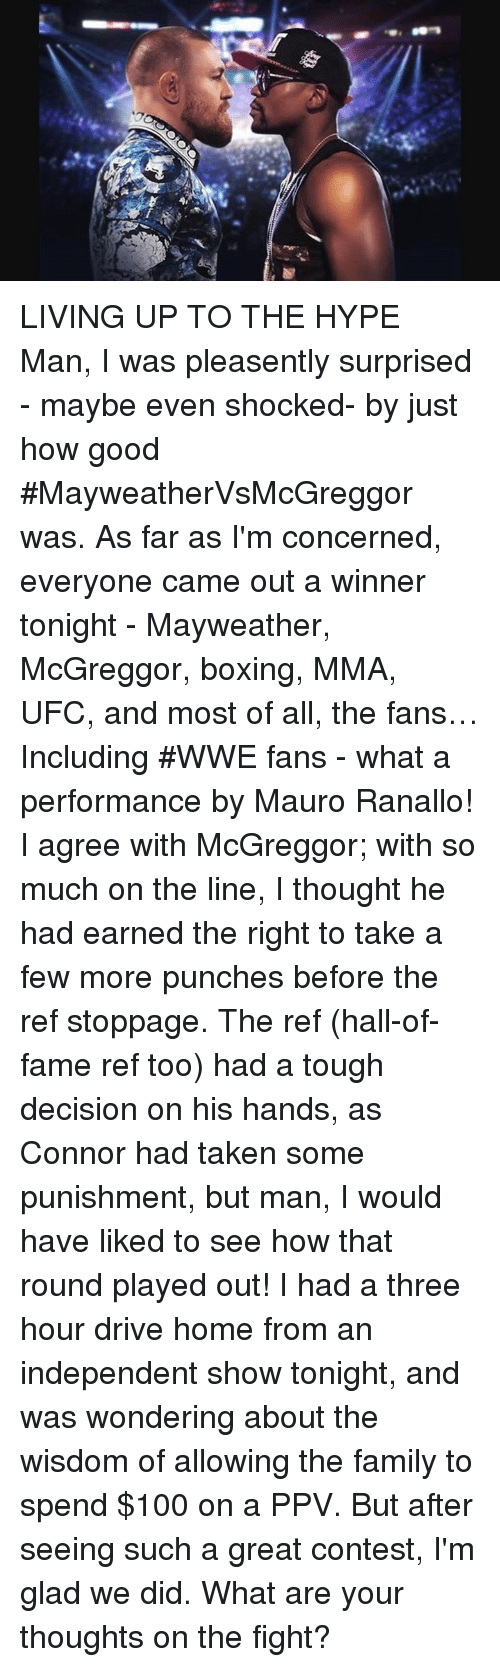 Conteste: LIVING UP TO THE HYPE Man, I was pleasently surprised - maybe even shocked- by just how good #MayweatherVsMcGreggor was.  As far as I'm concerned, everyone came out a winner tonight - Mayweather, McGreggor, boxing, MMA, UFC, and  most of all, the fans… Including #WWE fans -  what a performance by Mauro Ranallo! I agree with McGreggor; with so much on the line,  I thought he had earned the right to take a few more punches before the ref stoppage. The ref (hall-of-fame ref too) had a tough decision on his hands, as Connor had taken some punishment, but man,  I would have liked to see how that round played out!   I had a three hour drive home from an independent show tonight, and was  wondering about the wisdom of allowing the family to spend $100 on a PPV.  But after seeing such a great contest, I'm glad we did.  What are your thoughts on the fight?